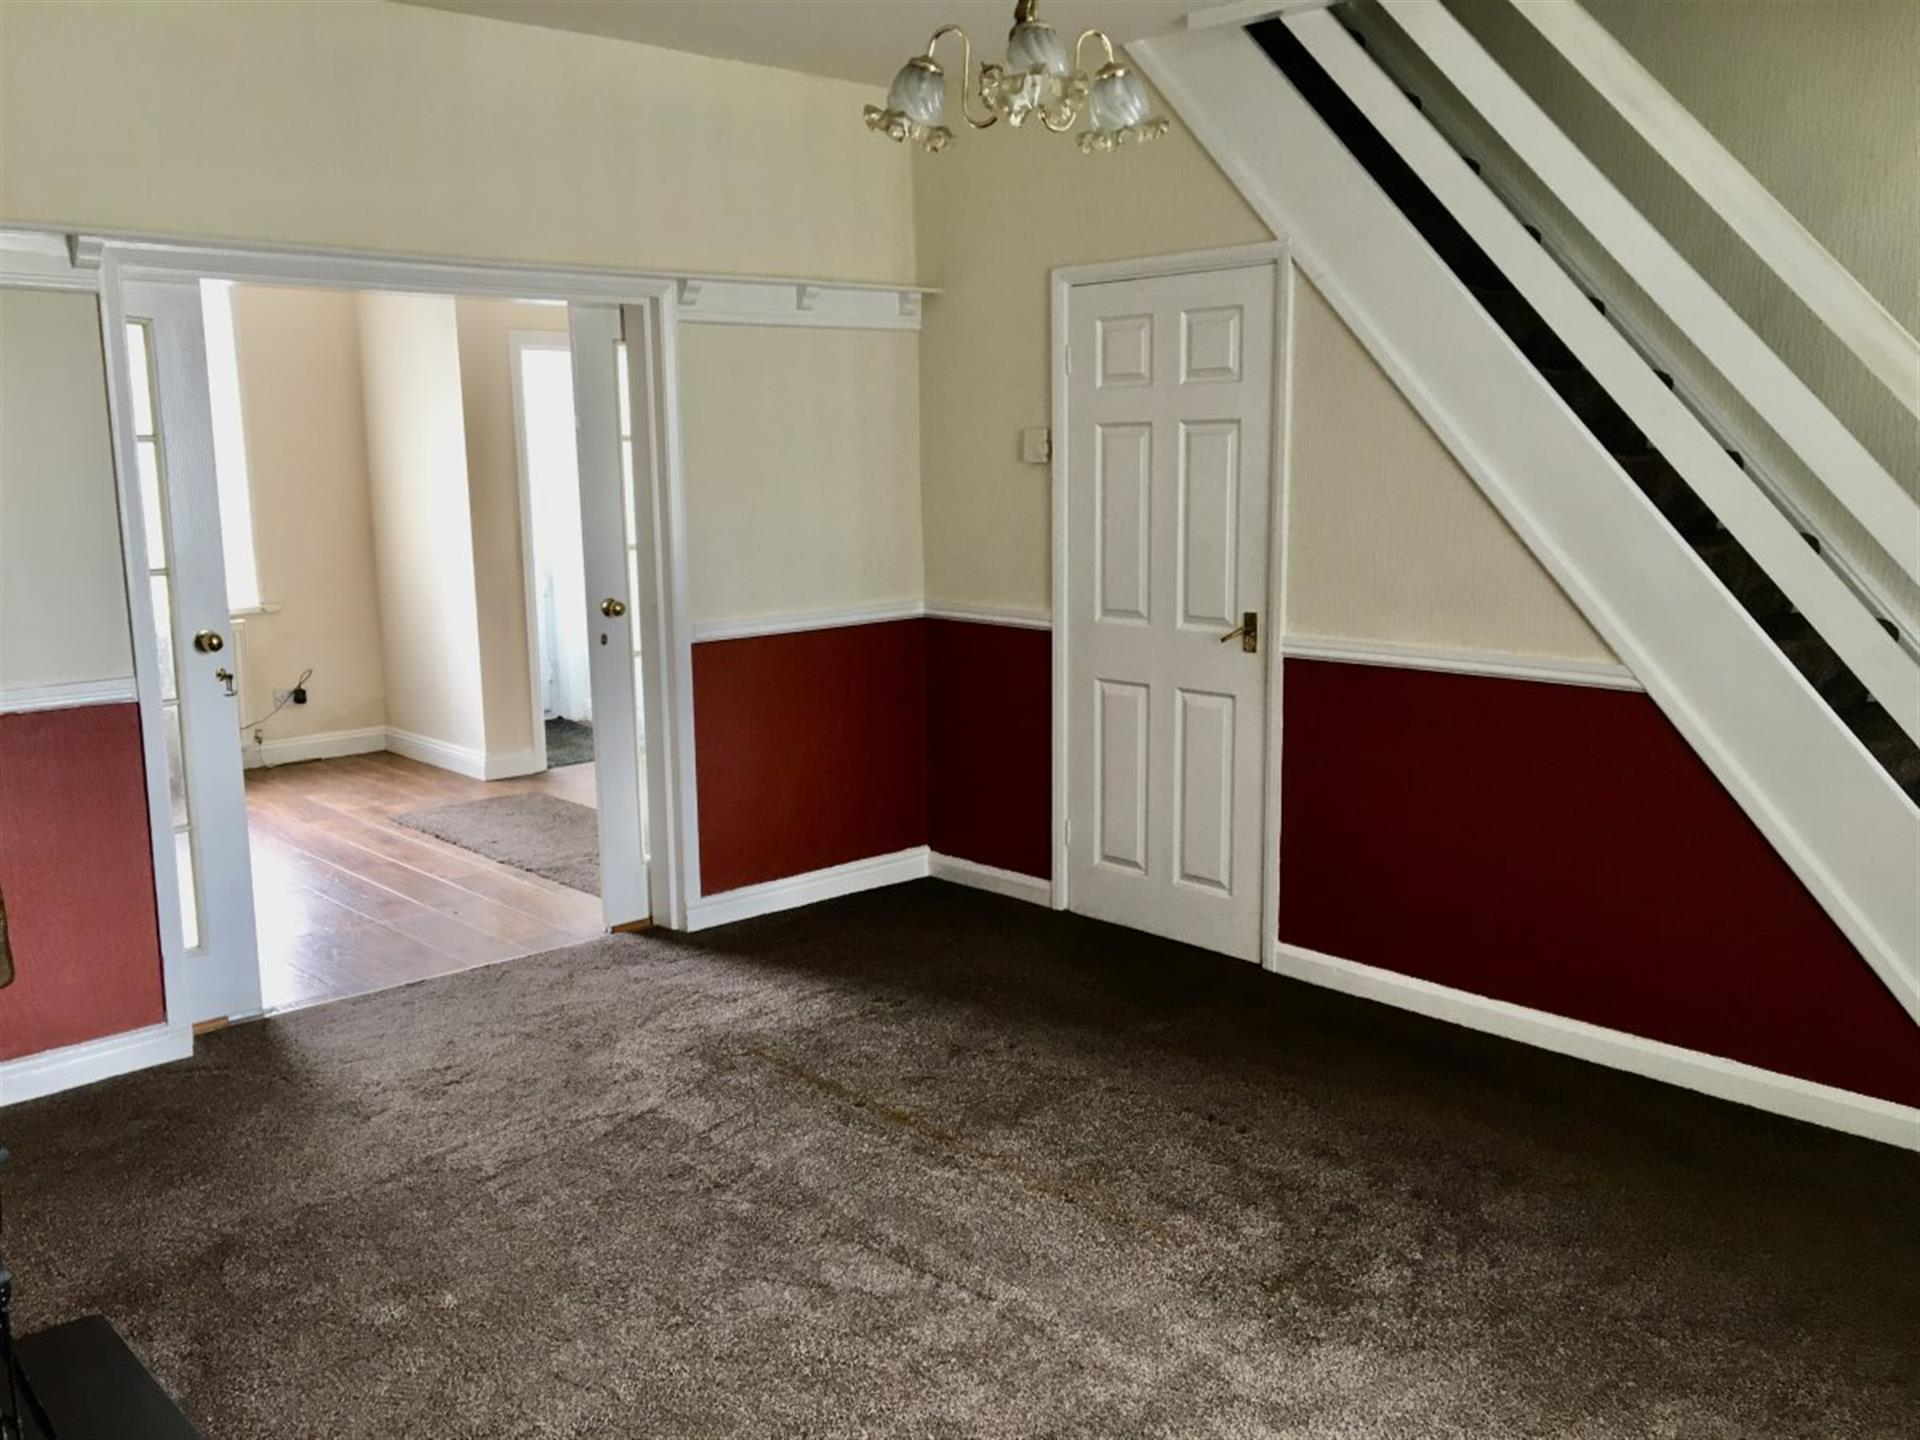 2 bedroom terraced house To Let in Bishop Auckland - photograph 4.